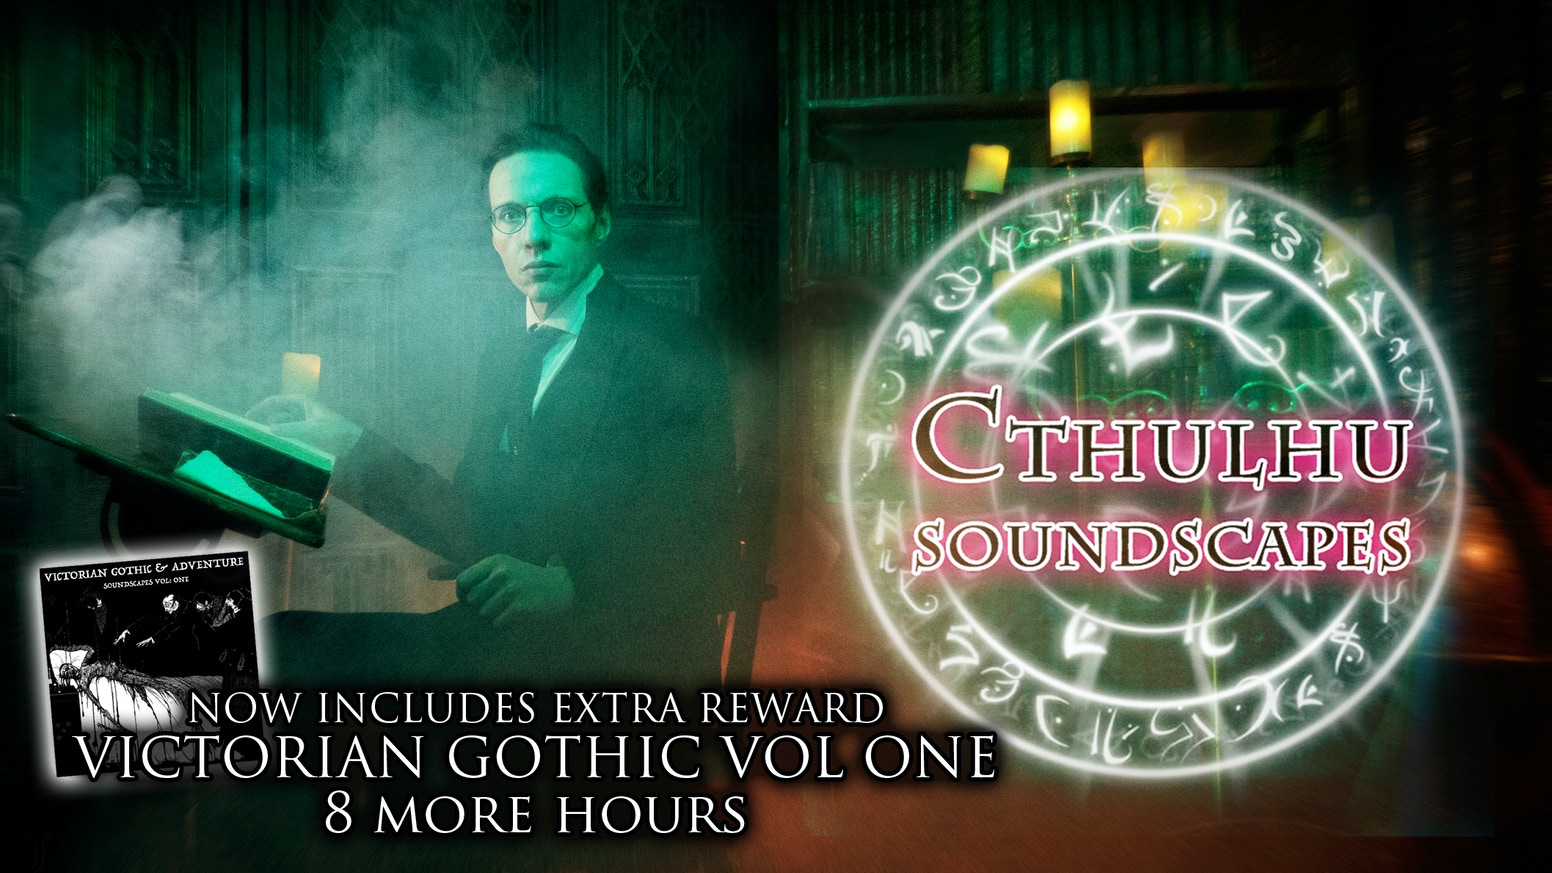 20 Selected Soundscapes from Vol 1-5. 8 Hours of ambience and drama for your roleplaying, board and Larp games.